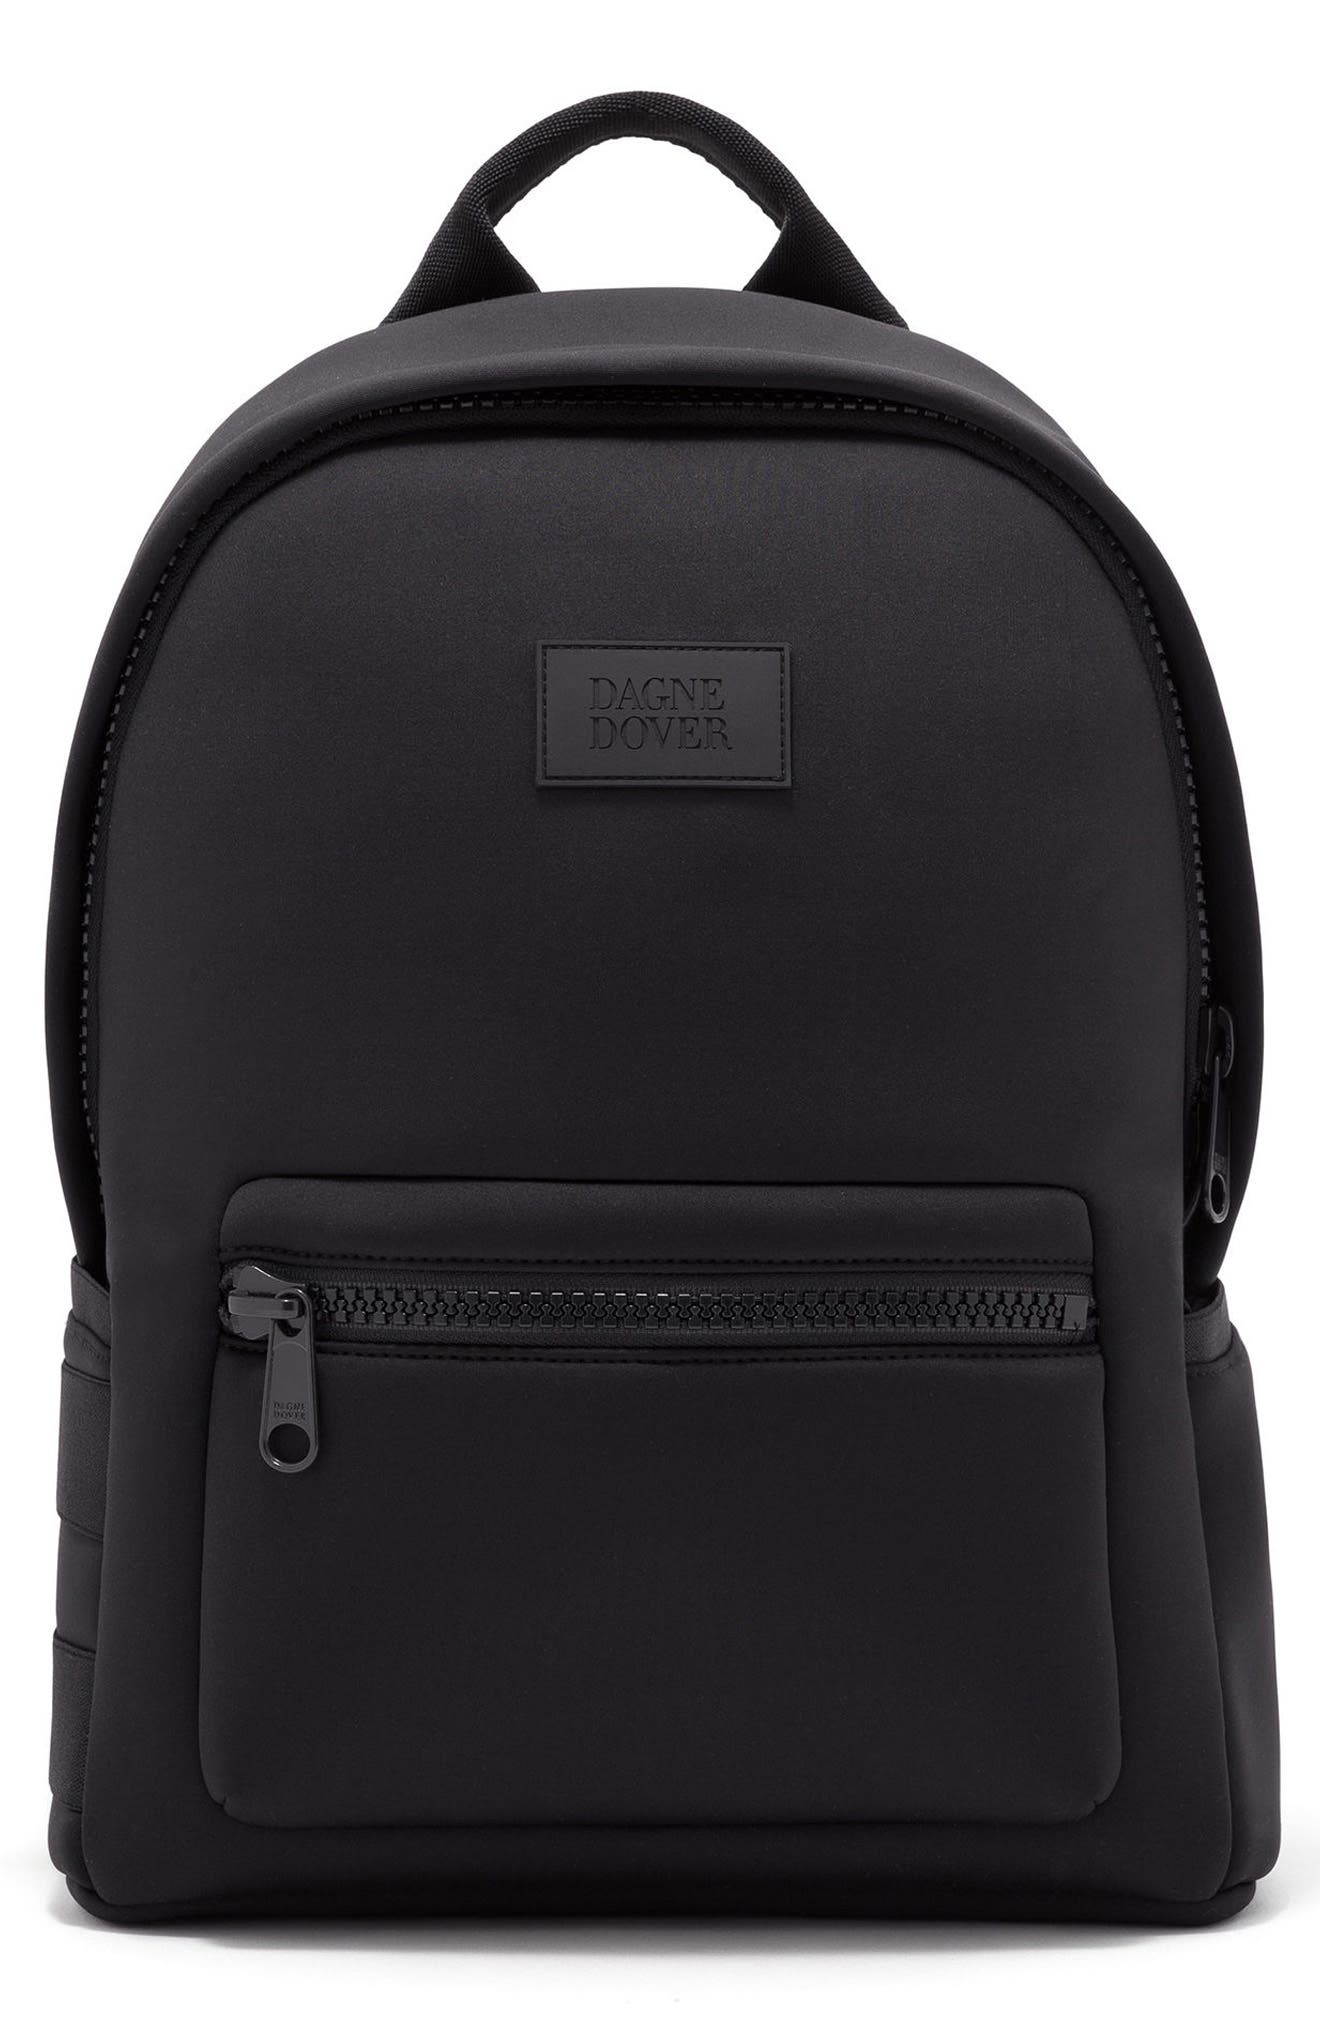 365 Dakota Neoprene Backpack - Black, Onyx